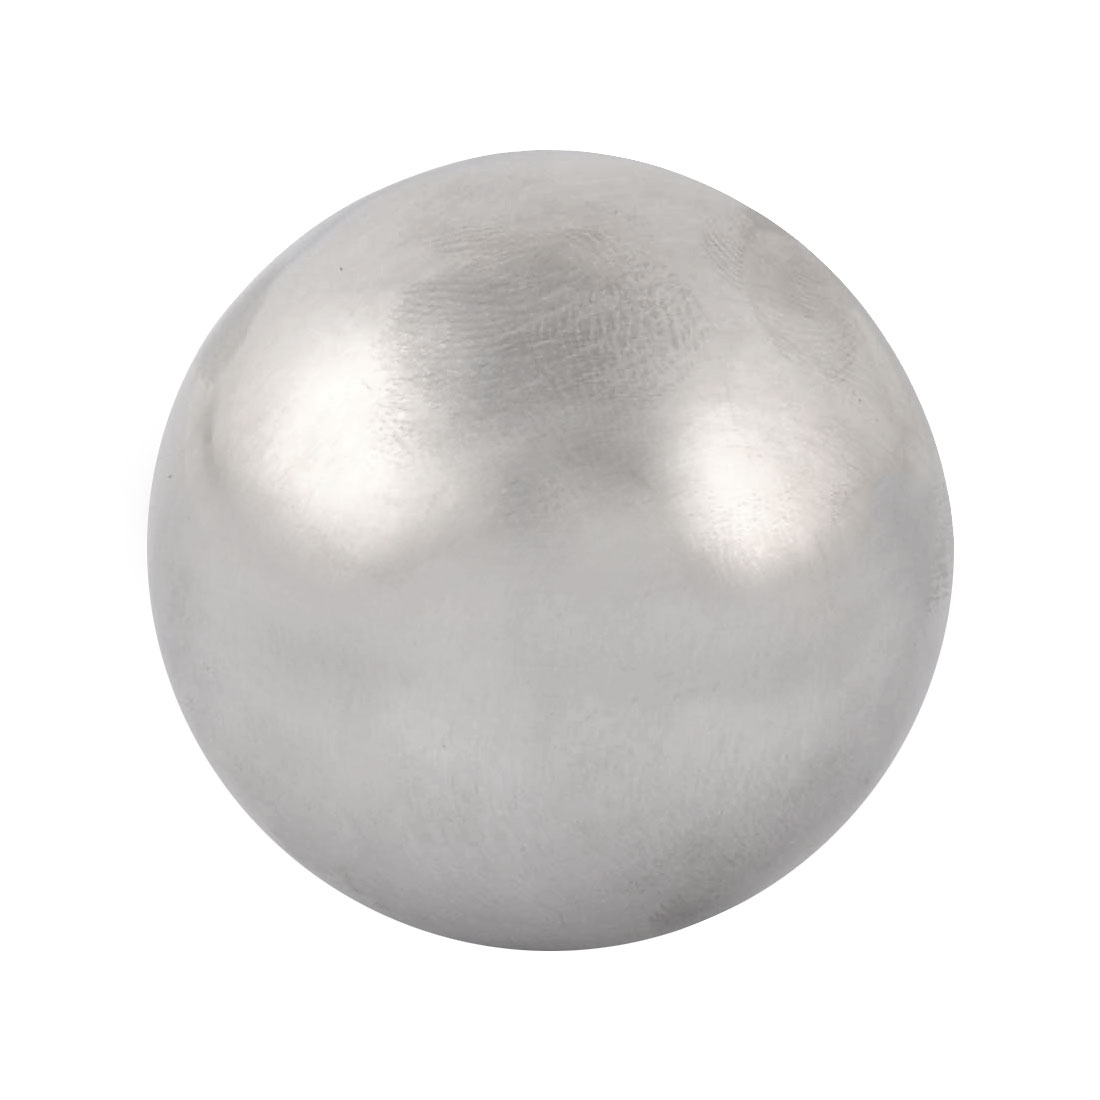 Stainless Steel Ball Shaped Soda Juice Physical Cooling Ice Cube Silver Tone 4cm Diameter